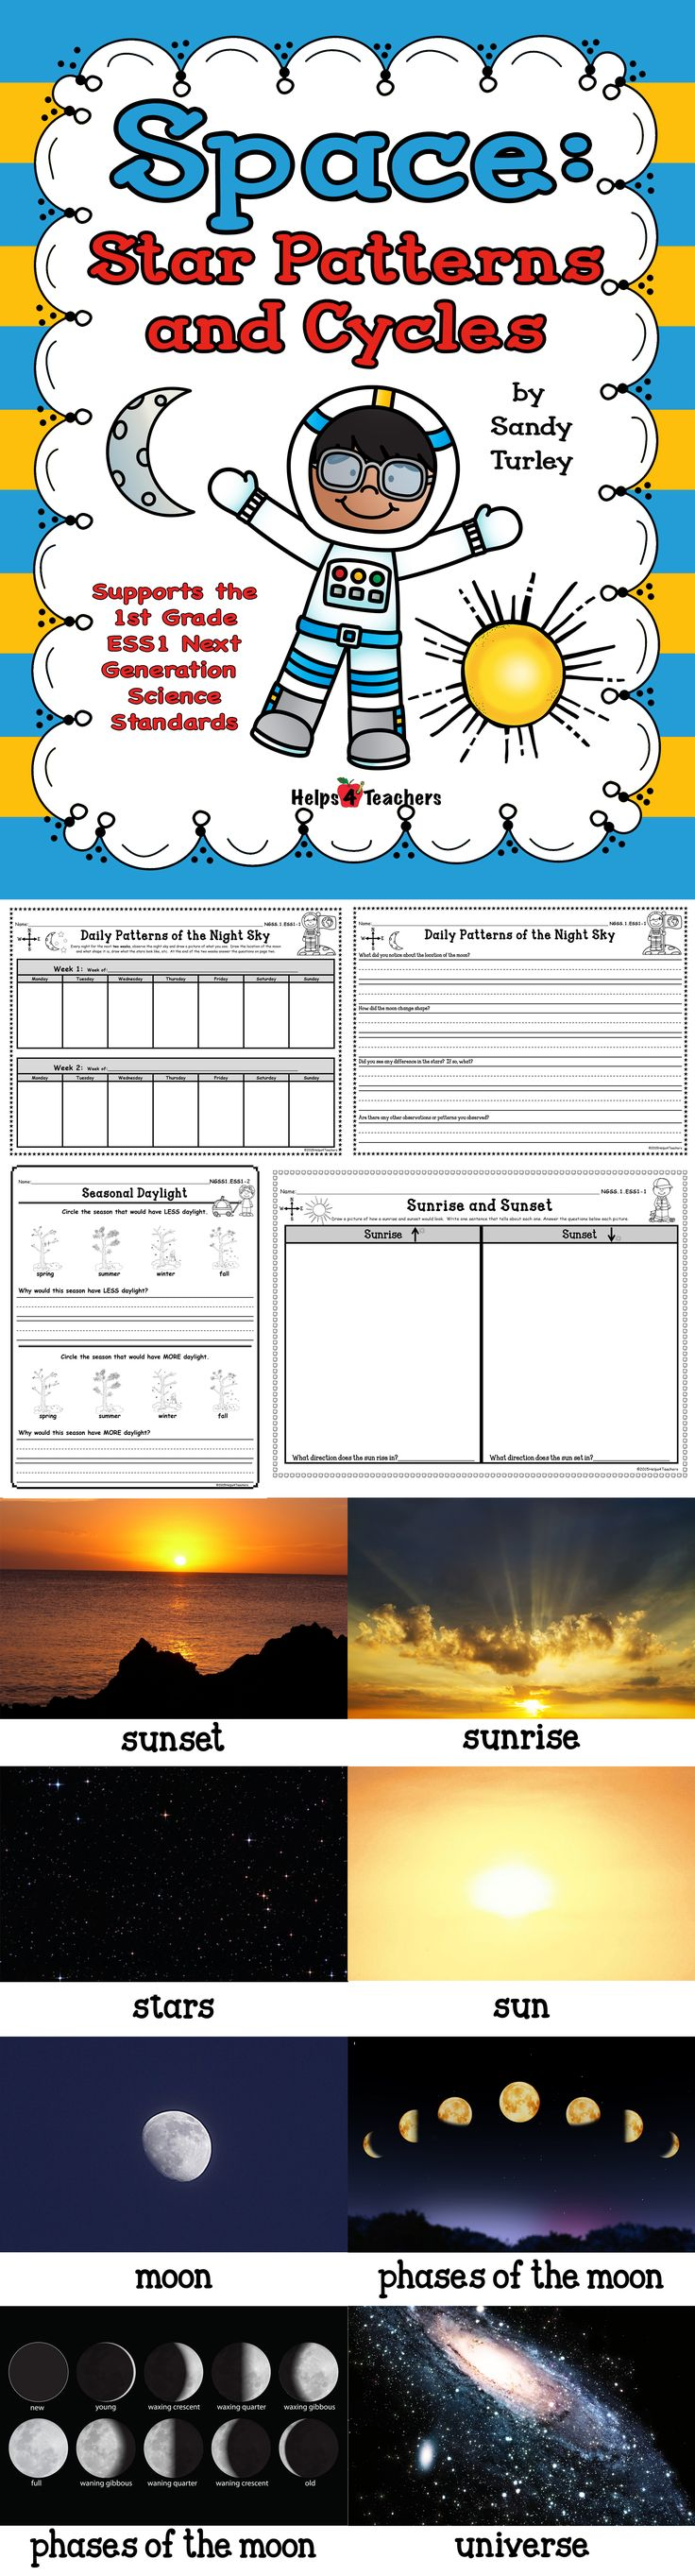 $ FANTASTIC!! This packet supports the 1st Grade New Generation Science Standard ESS1 and includes the following things needed to teach this standard:  -	Patterns of the Day Sky -	Patterns of the Night Sky -	Sunrise and Sunset -	Seasonal Daylight  Also included are large and small full color photographs of the moon, the sun, stars, the universe, a sunrise, a sunset and the phases of the moon.